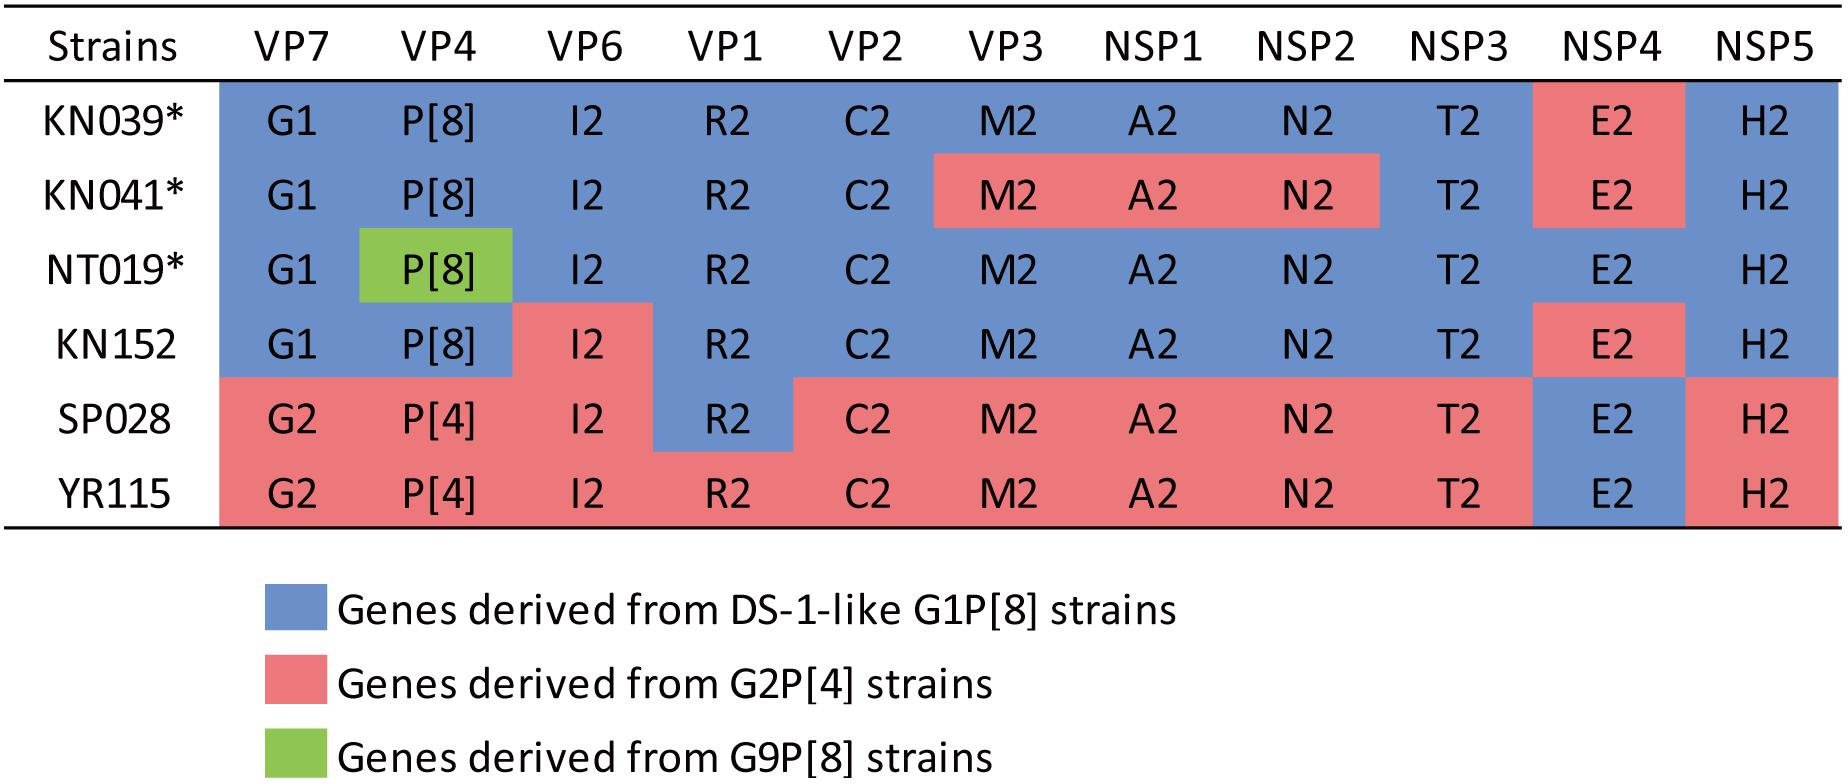 Frontiers   Study of Complete Genome Sequences of Rotavirus